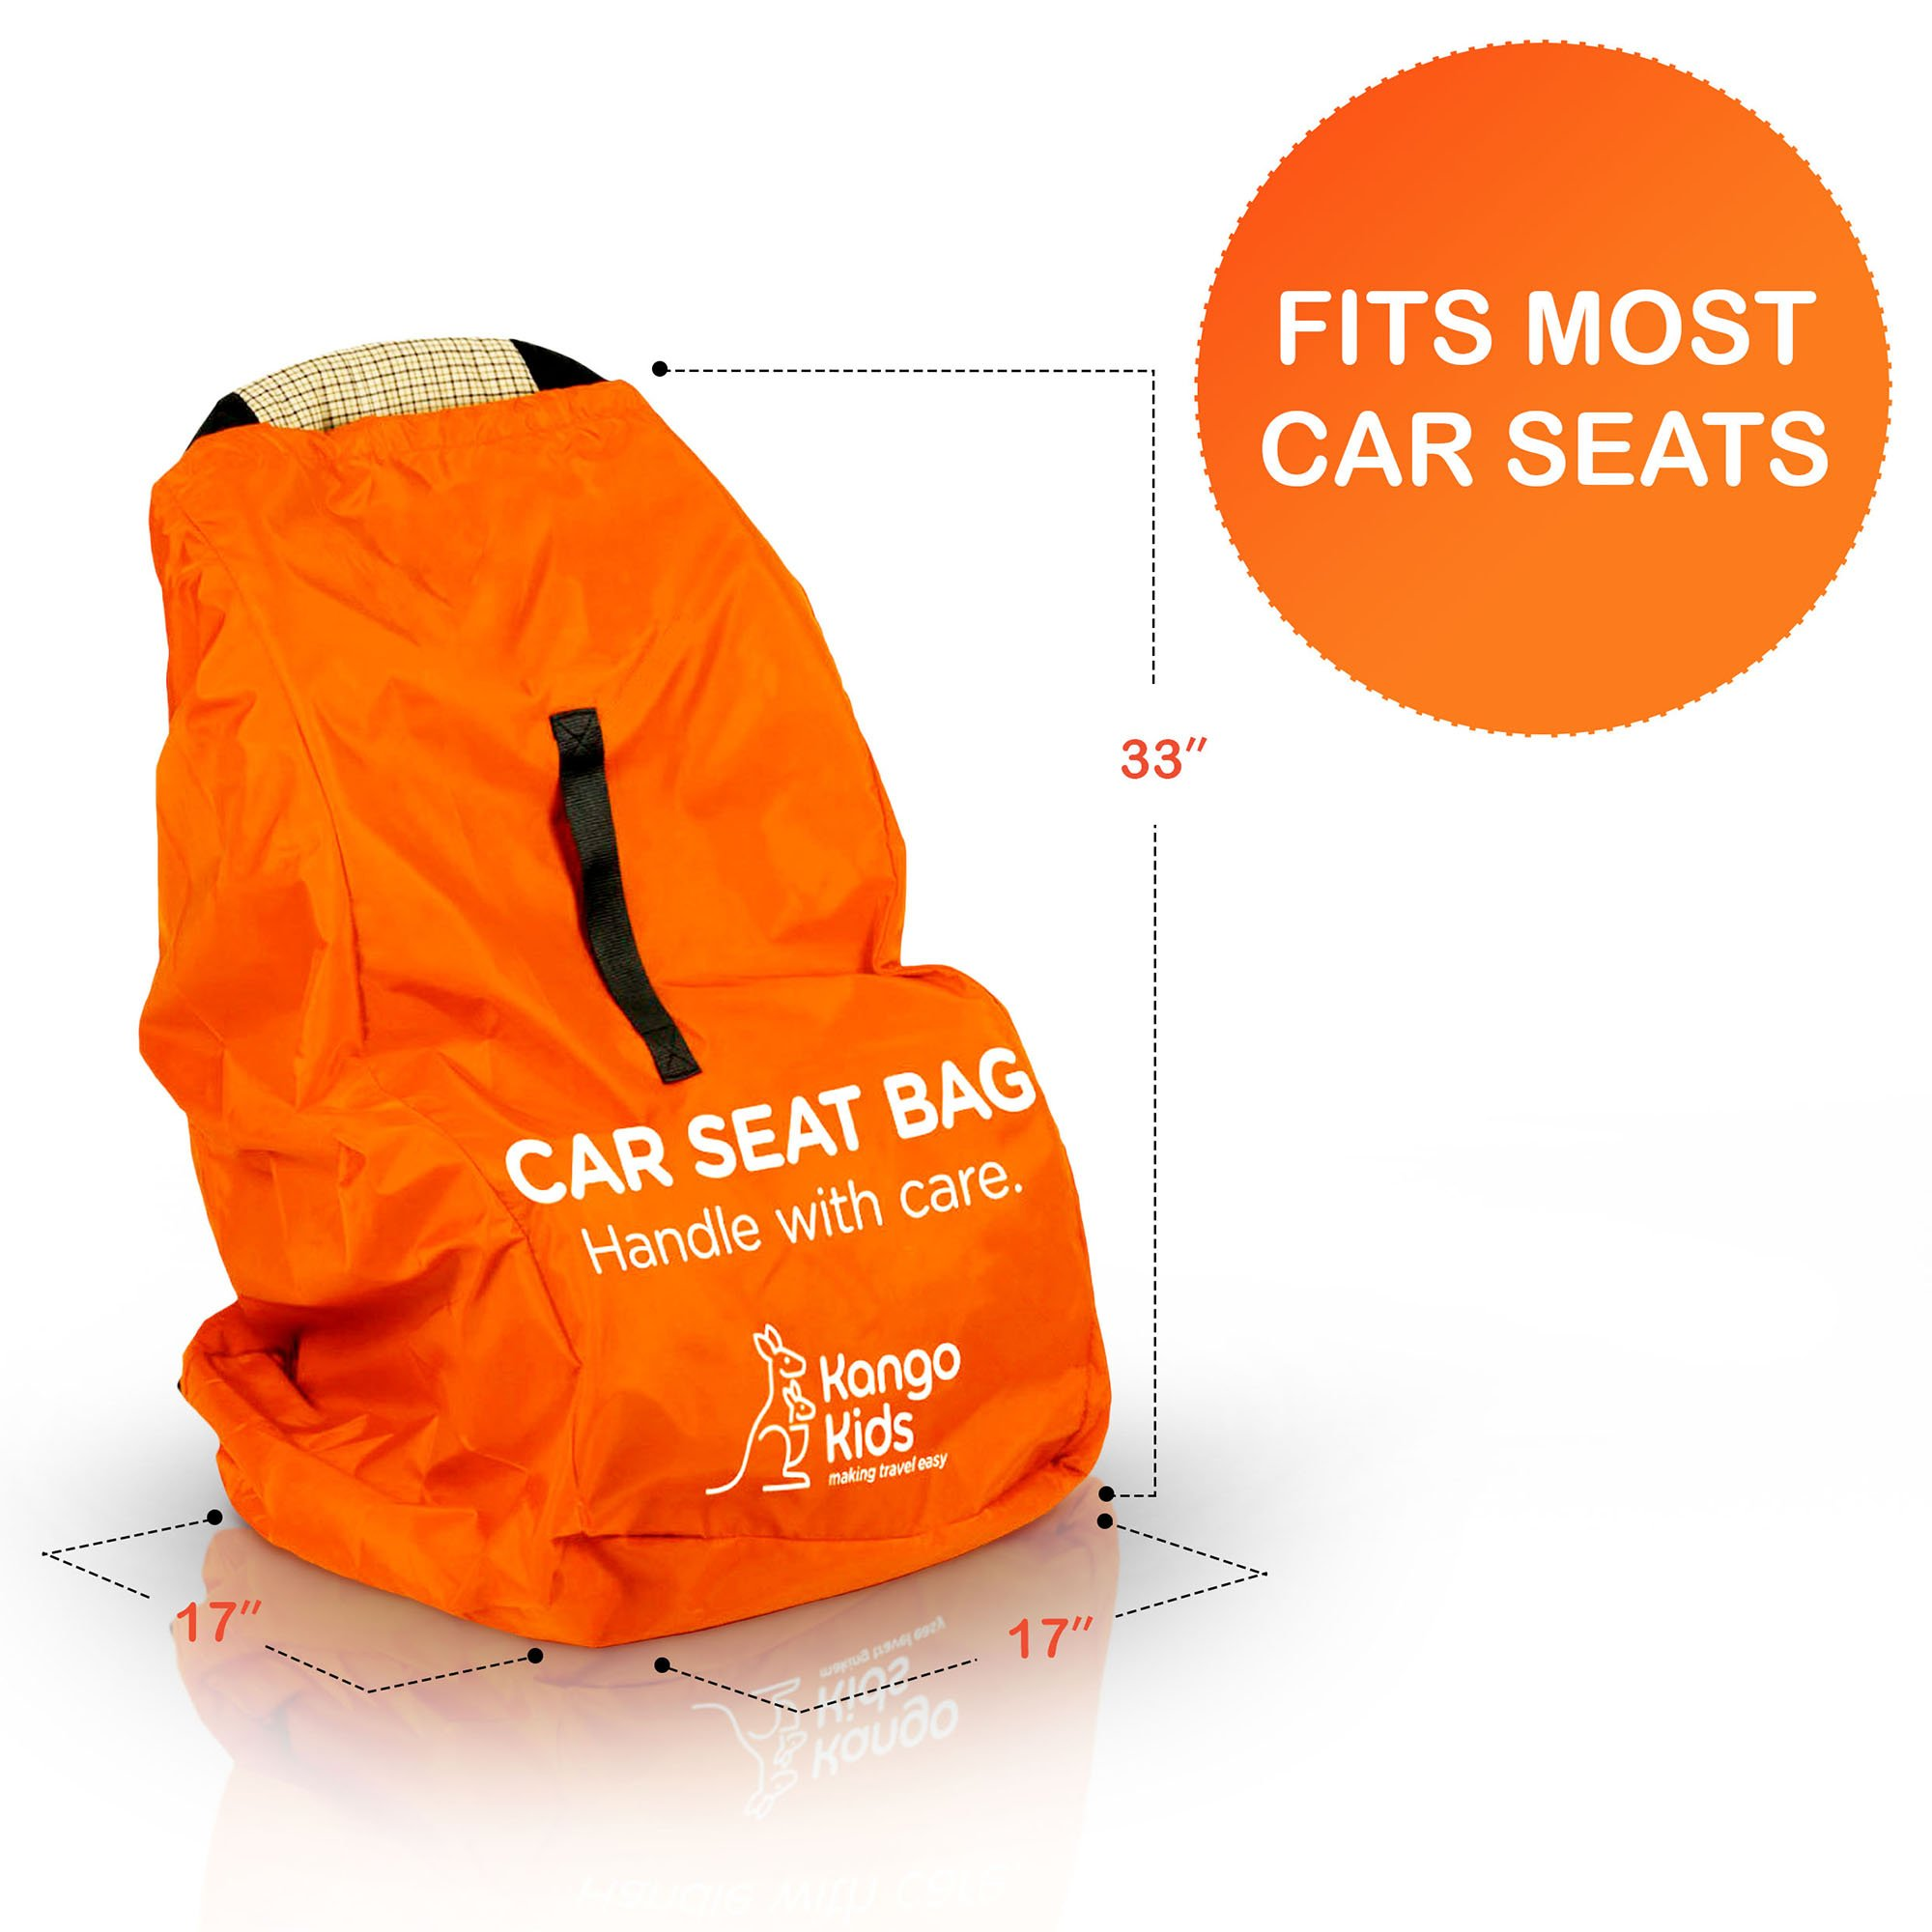 Car Seat Travel Bag -Make Travel Easier & Save Money. NEW IMPROVED Carseat Carrier for Airport - Protect your Child's CarSeats & Stroller from Germs & Damage. Easy Carry Padded Backpack by KangoKids (Image #2)